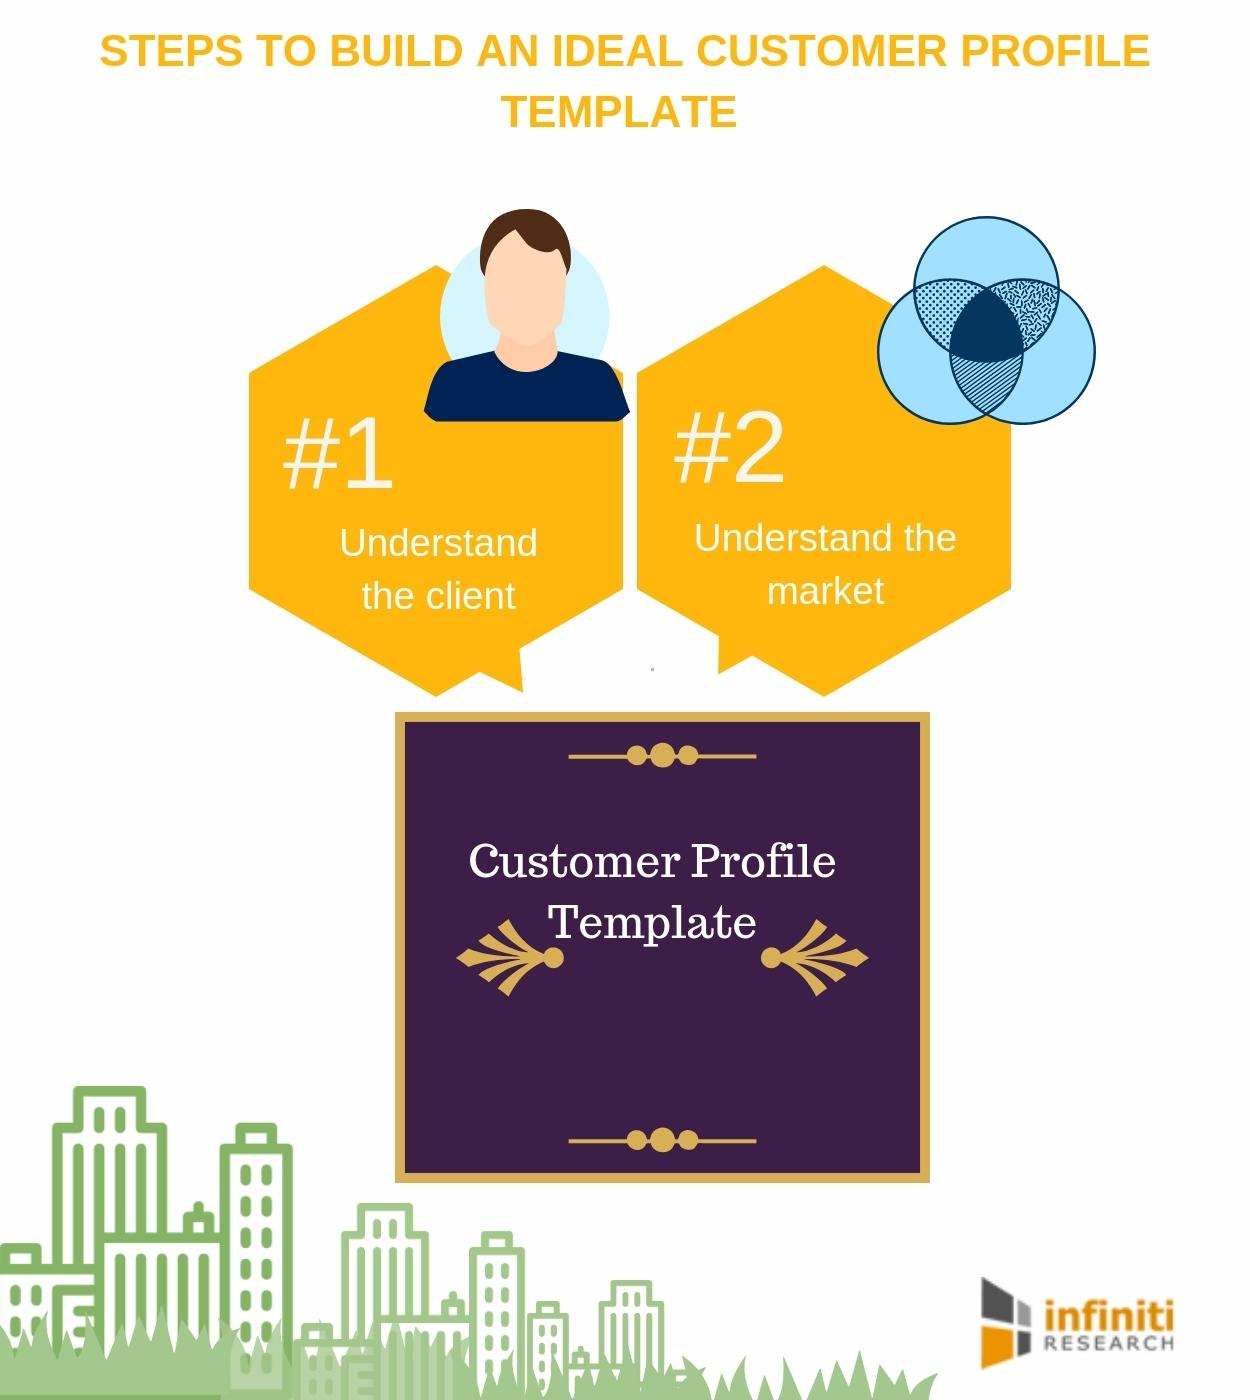 Infiniti research reveals the steps to build an ideal customer.